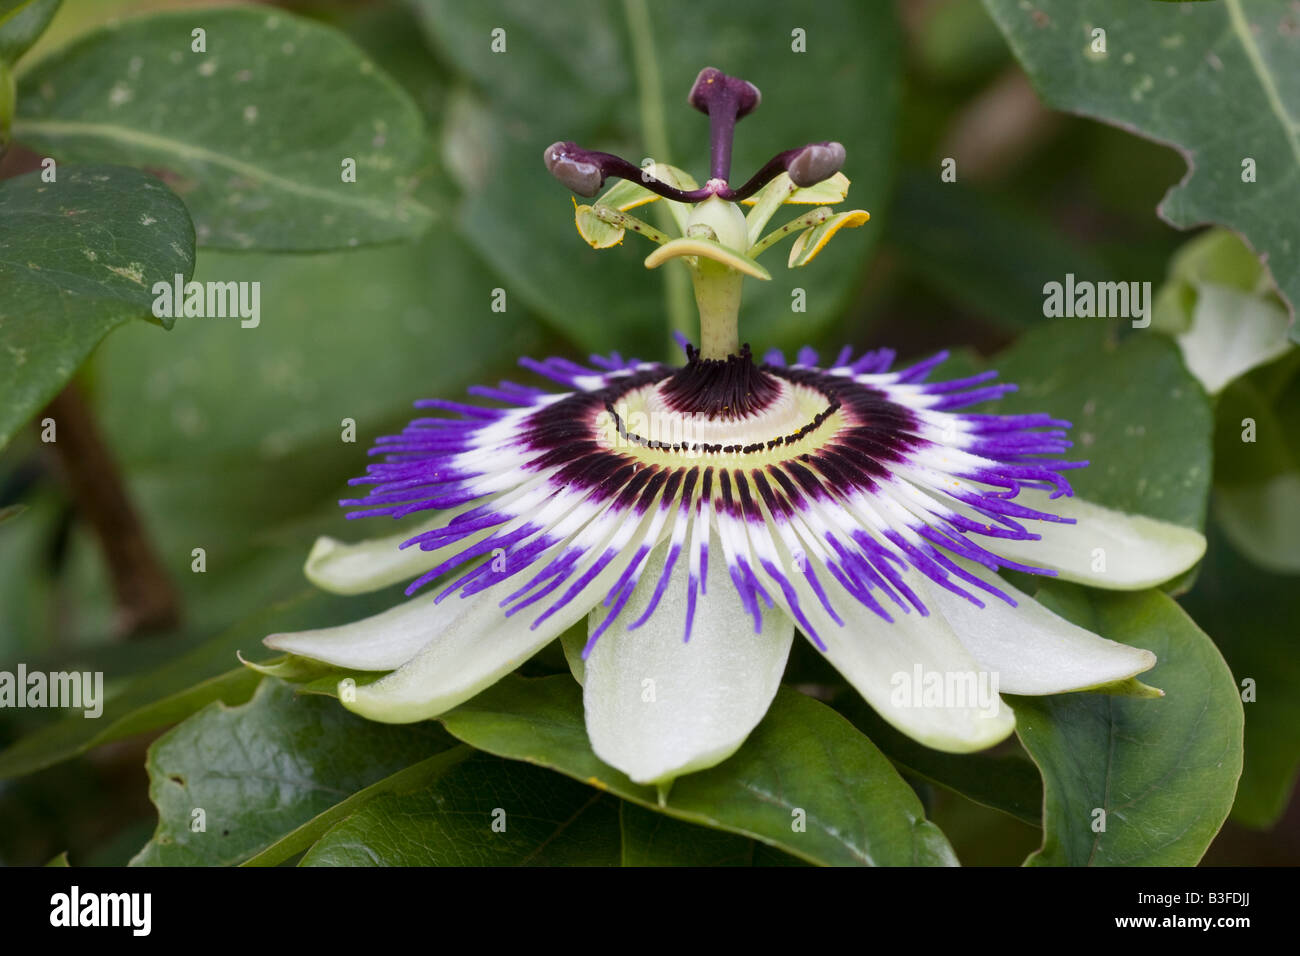 The Flower Of A Blue Passion Flower Passiflora Caerulea Stock Photo